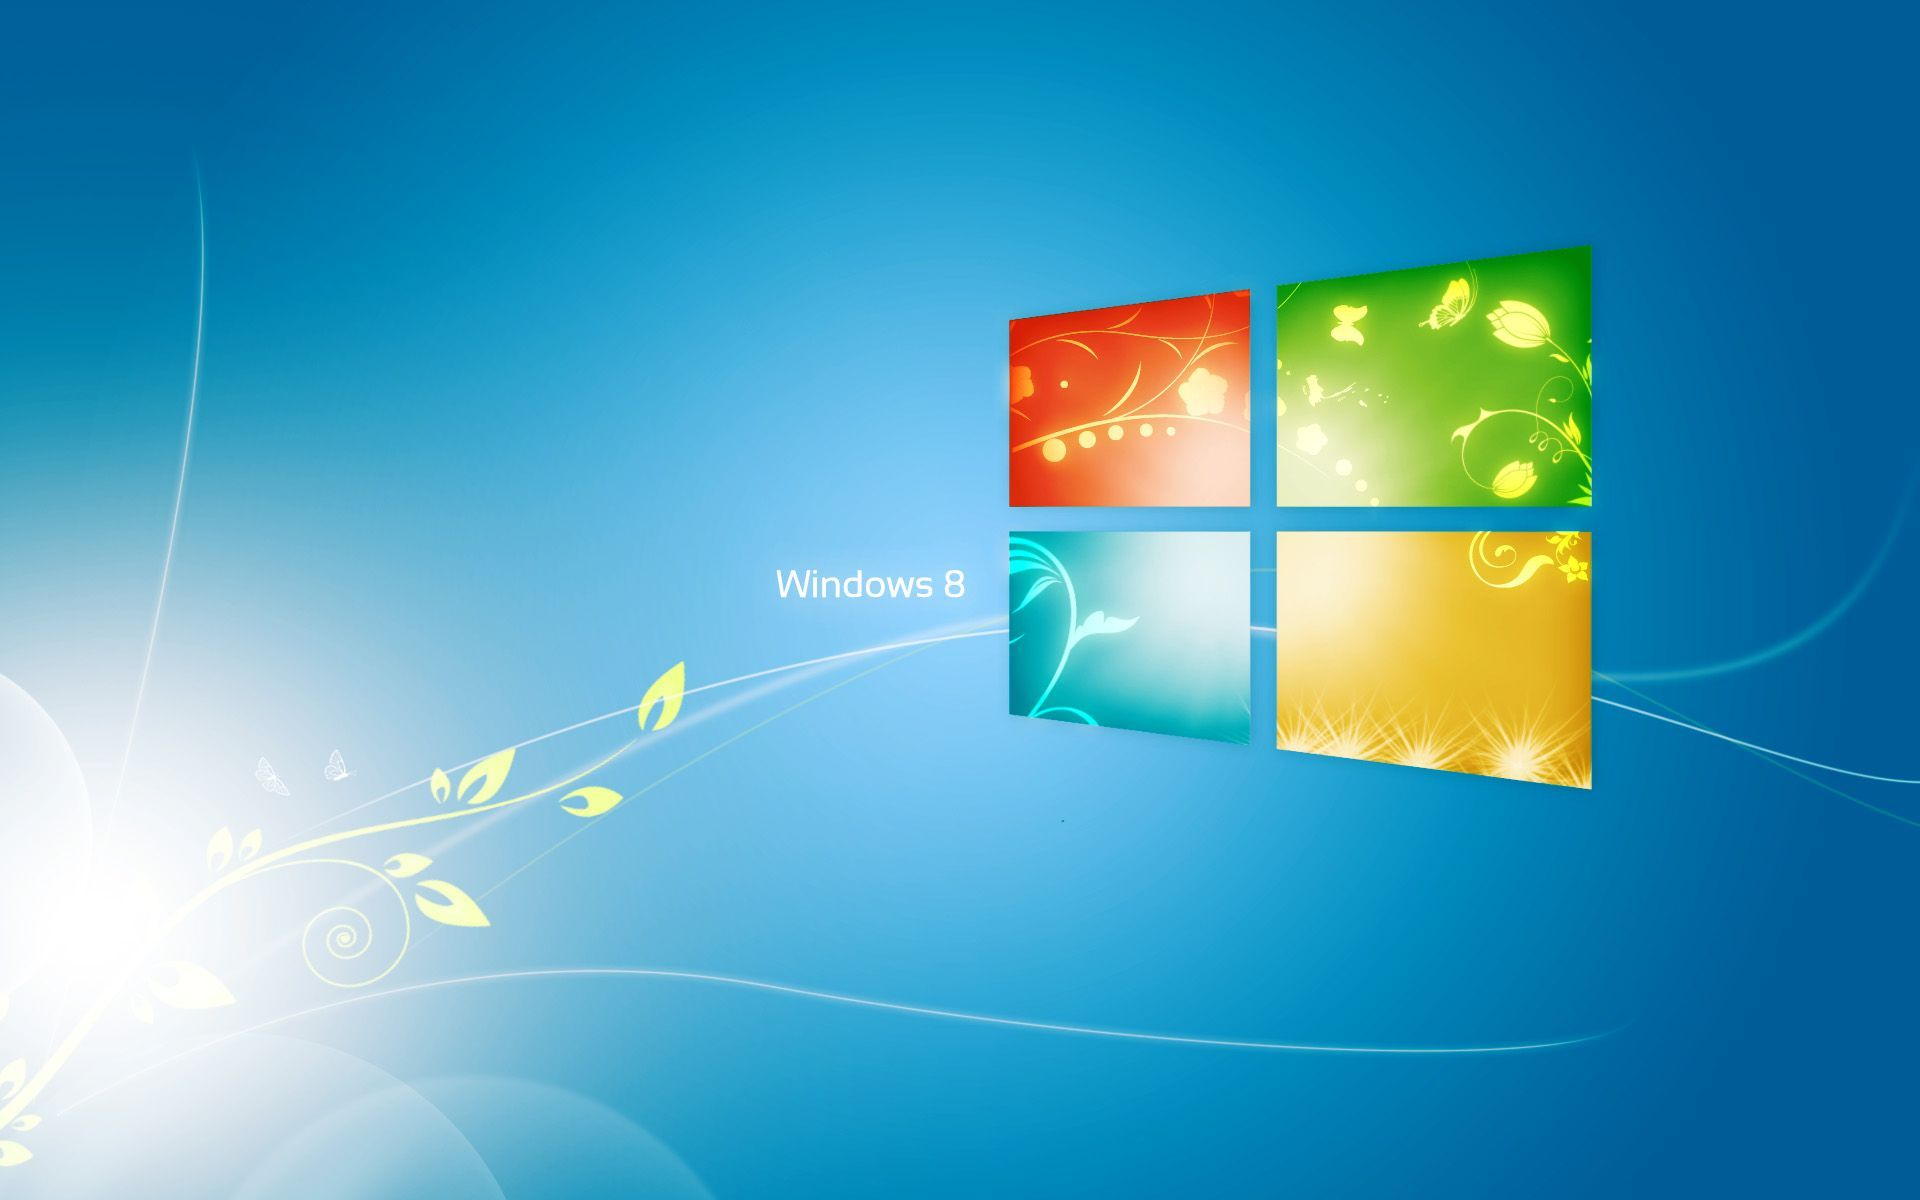 Windows 10 Wallpaper Hd 1080p Posted By Christopher Johnson